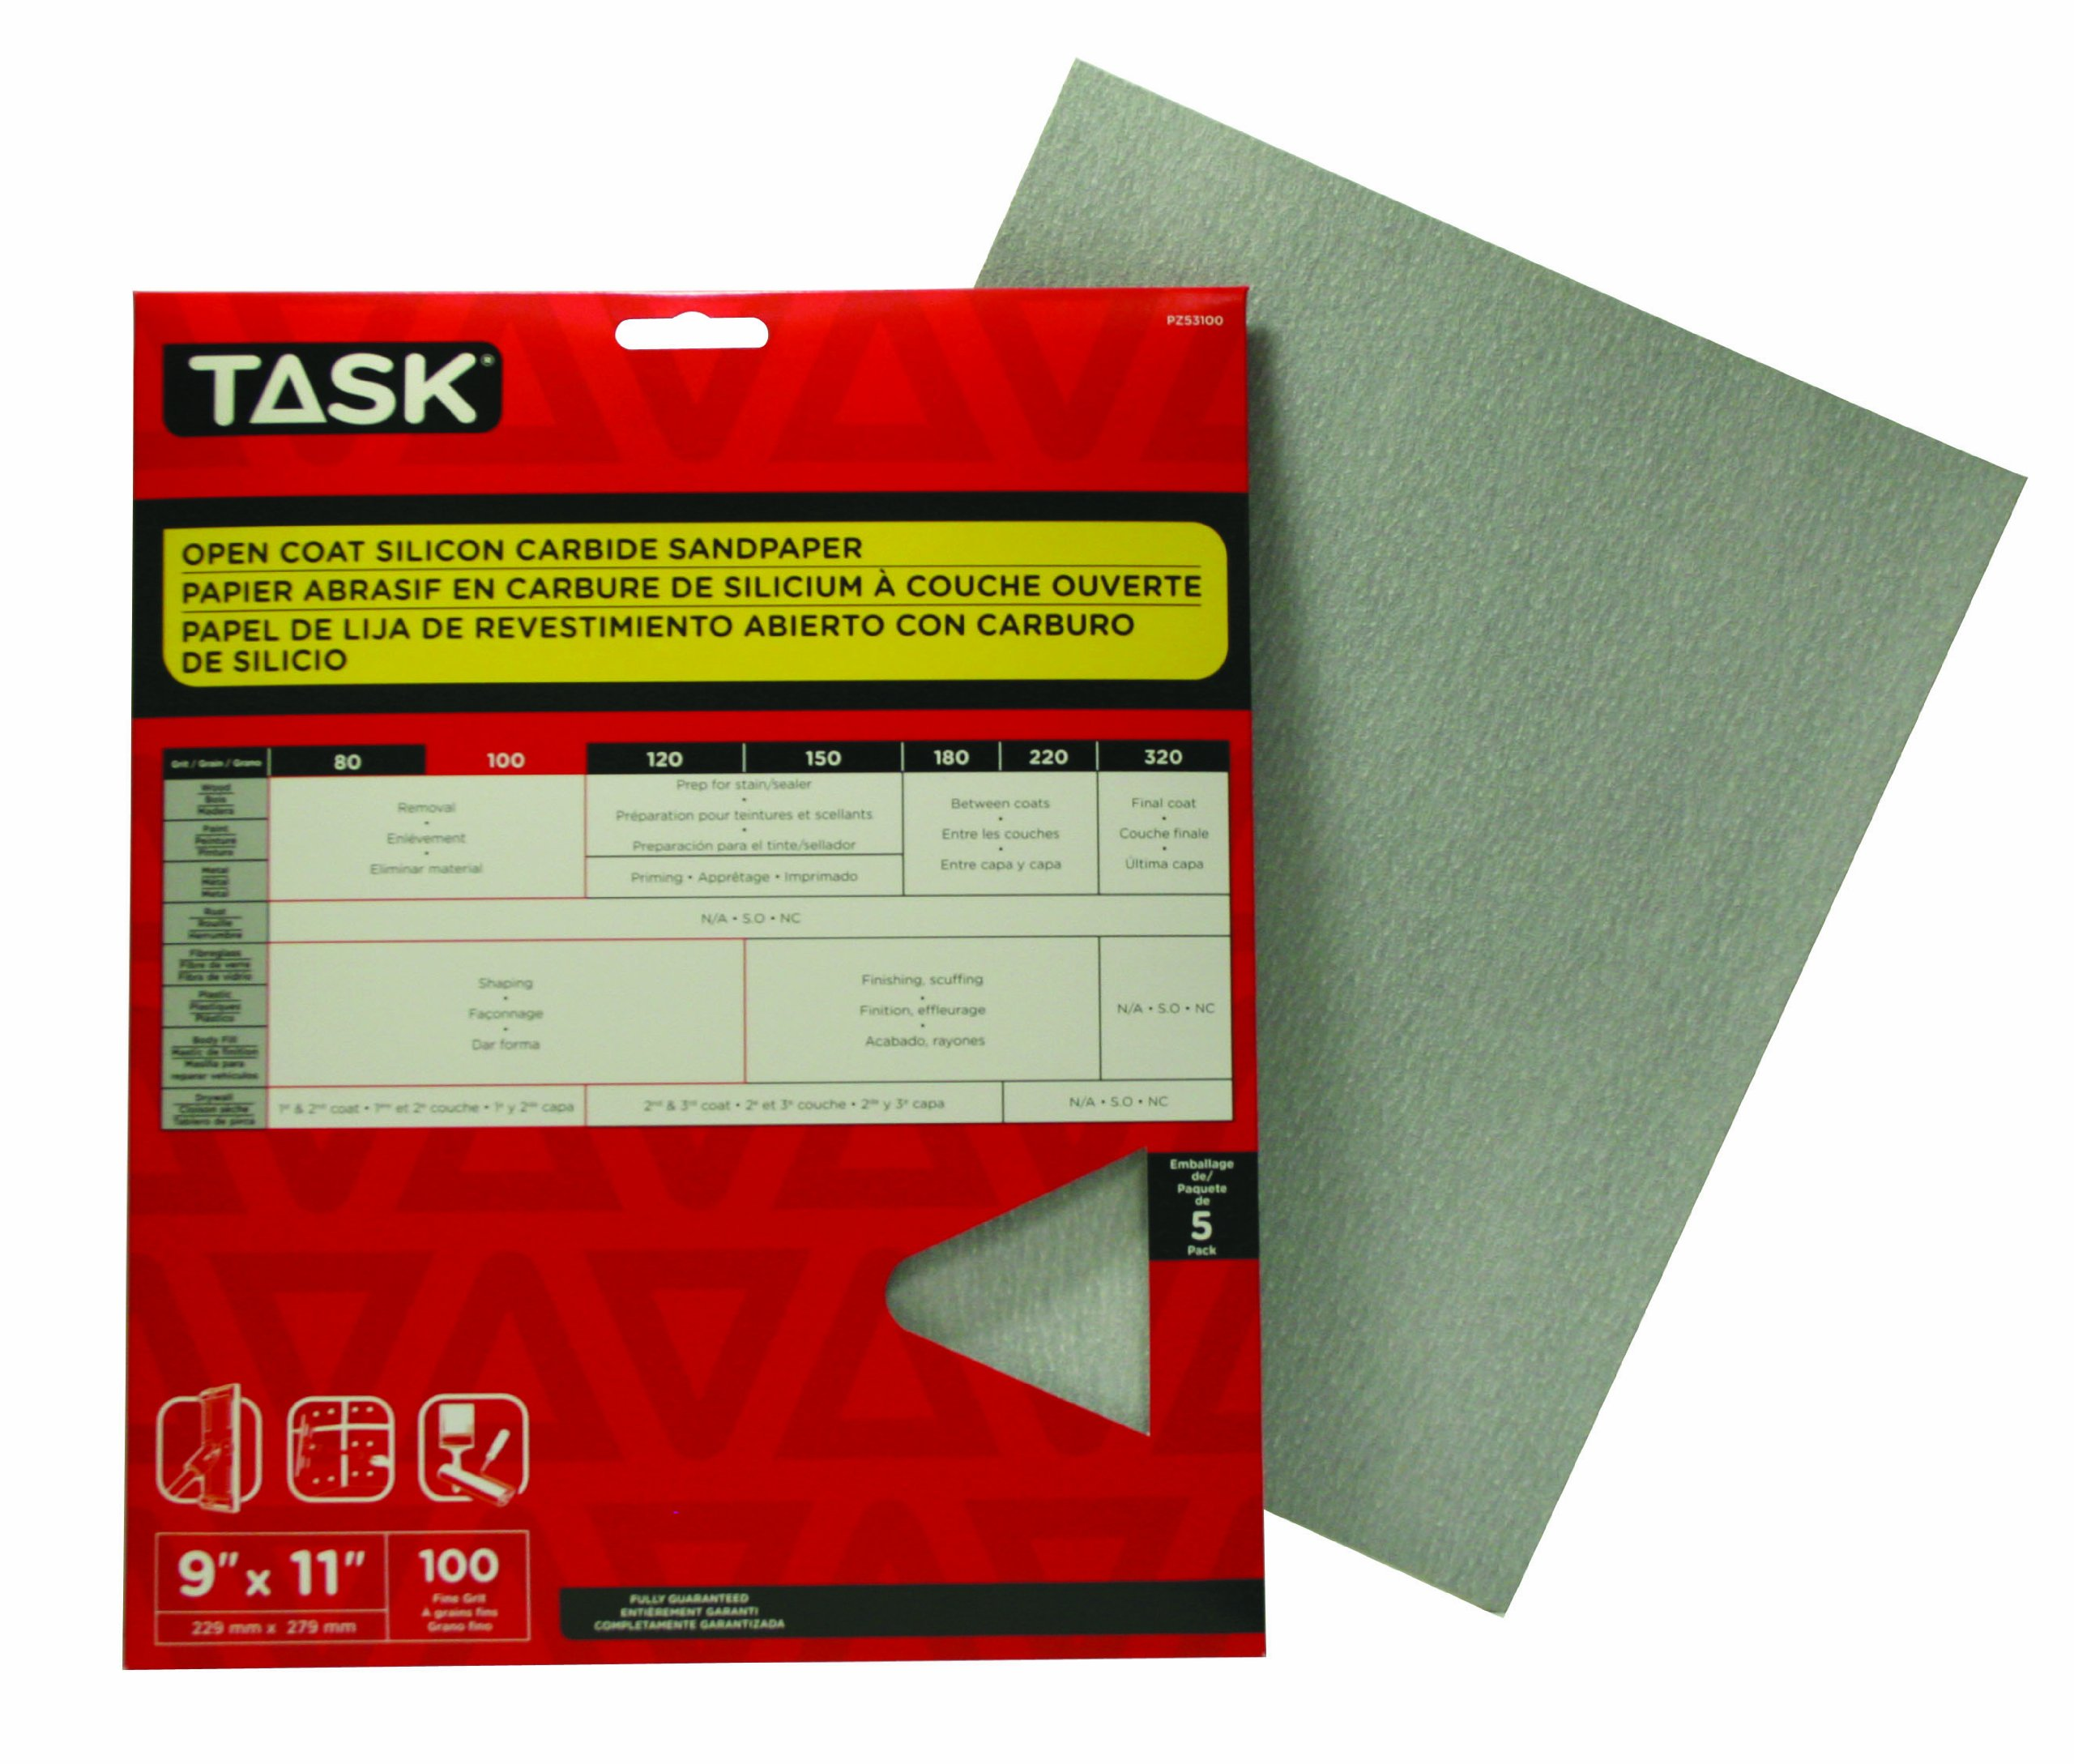 Task Tools PZ53100 9-Inch by 11-Inch Open Coat Drywall Sandpaper, 100 Grit, 5-Pack